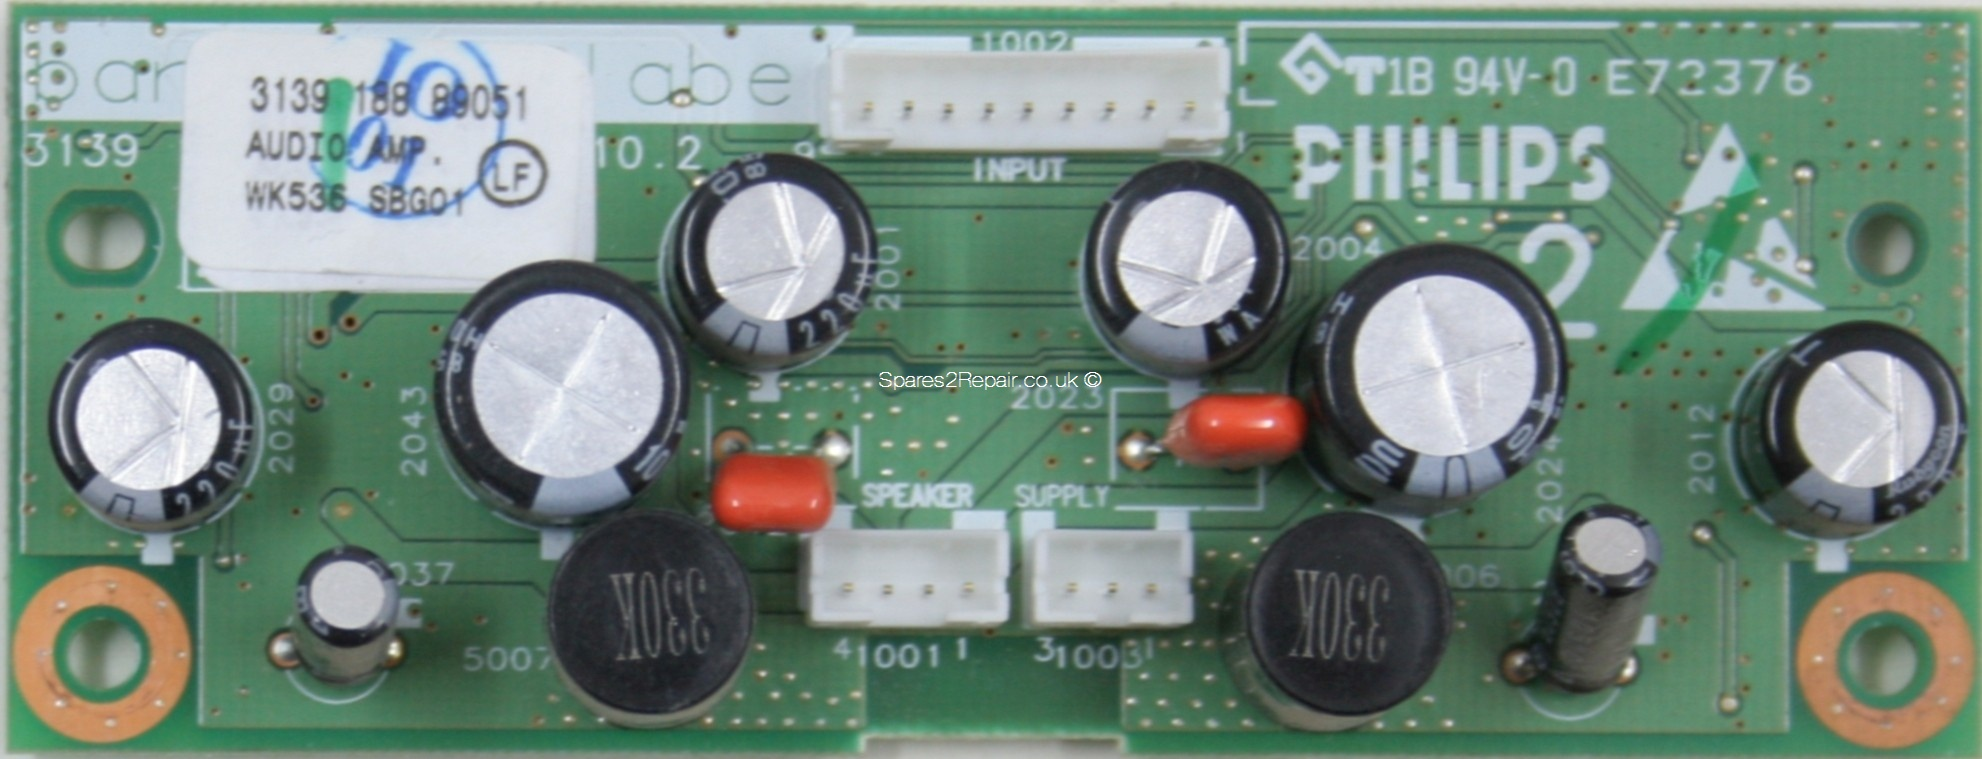 Philips 32PF5520D/10 - Audio Amp - 3139 188 89051 - 3139 123 5970.2